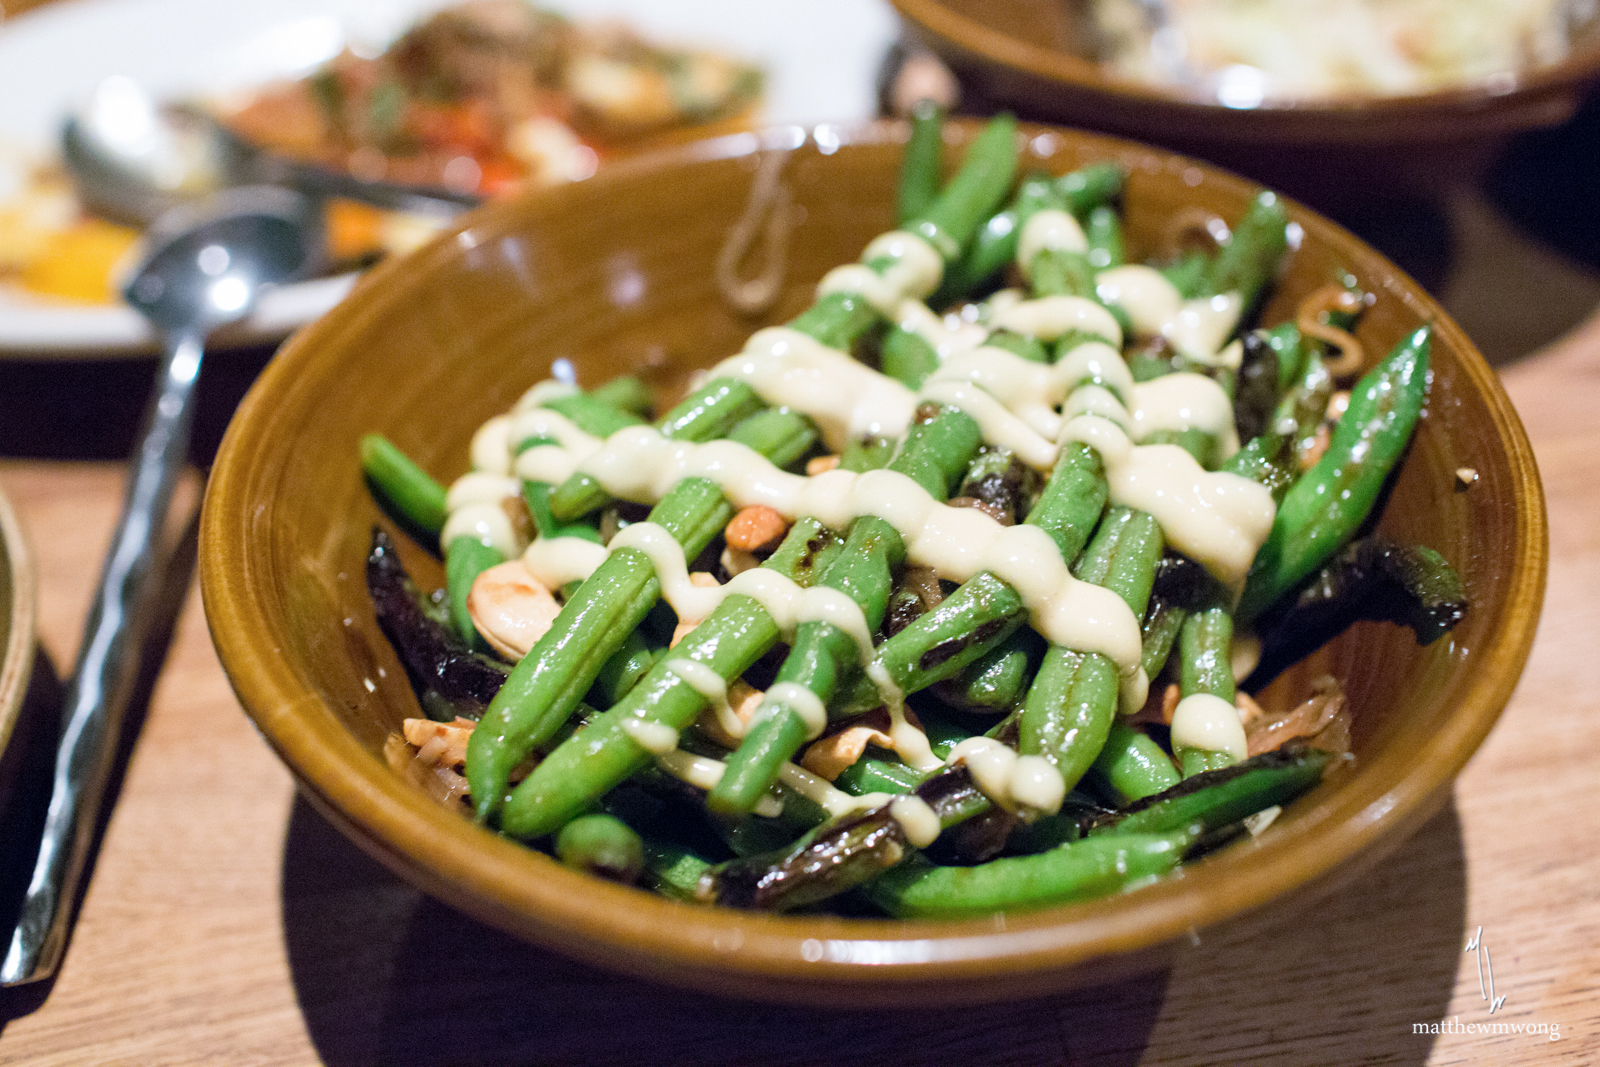 sauteed green beans, fish sauce vinaigrette, cashews